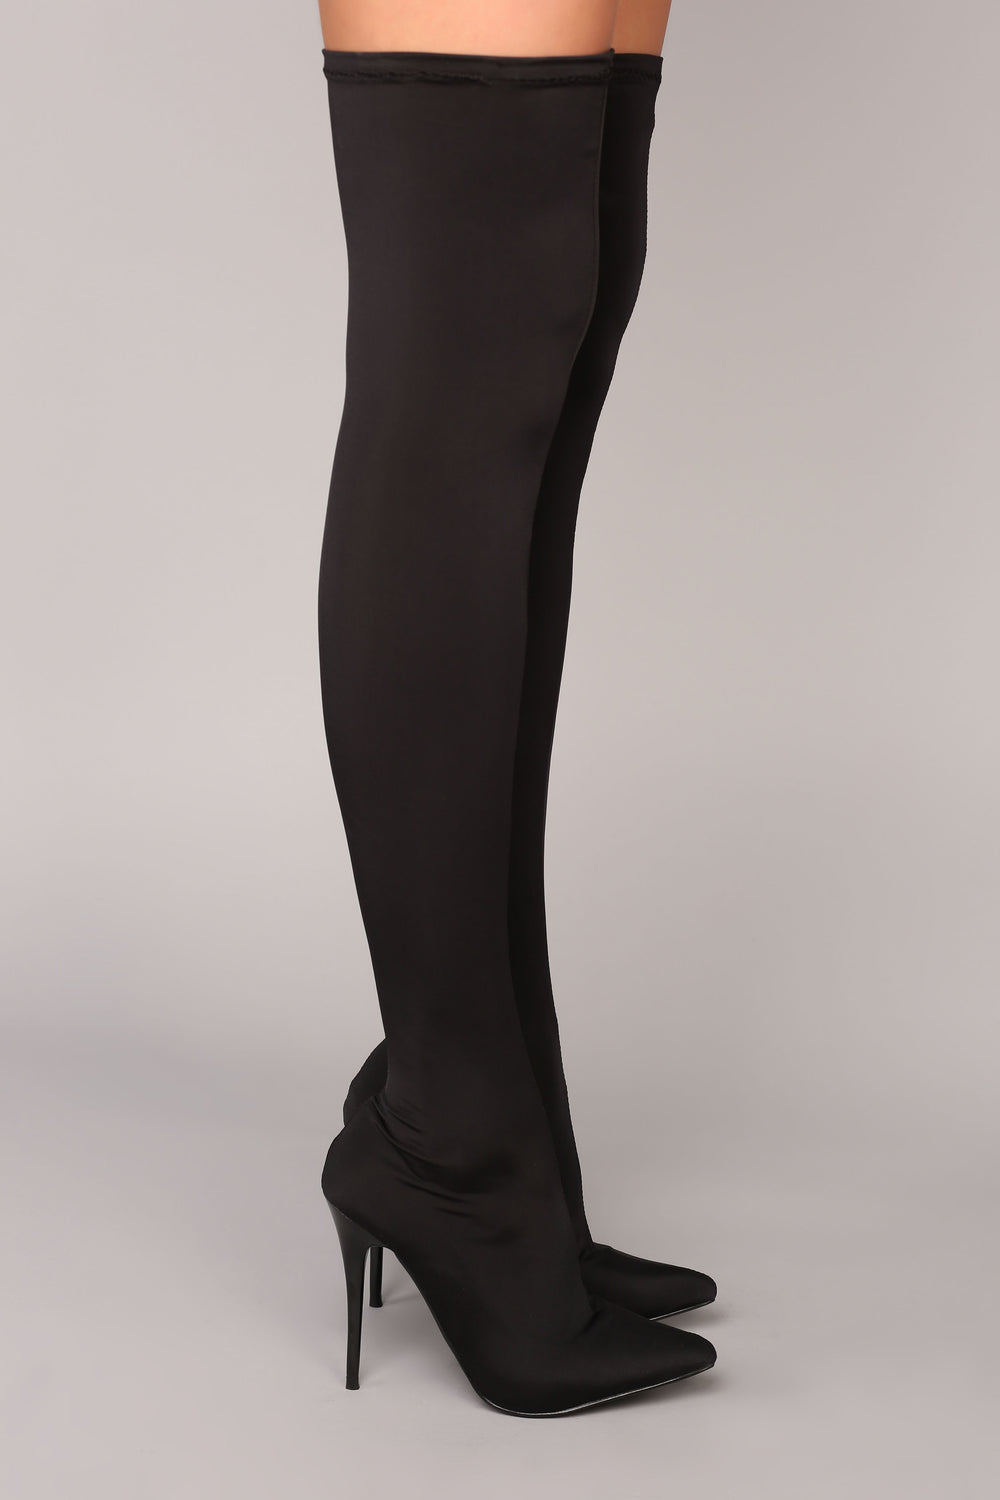 For A Little Fame Over The Knee Boot - Black